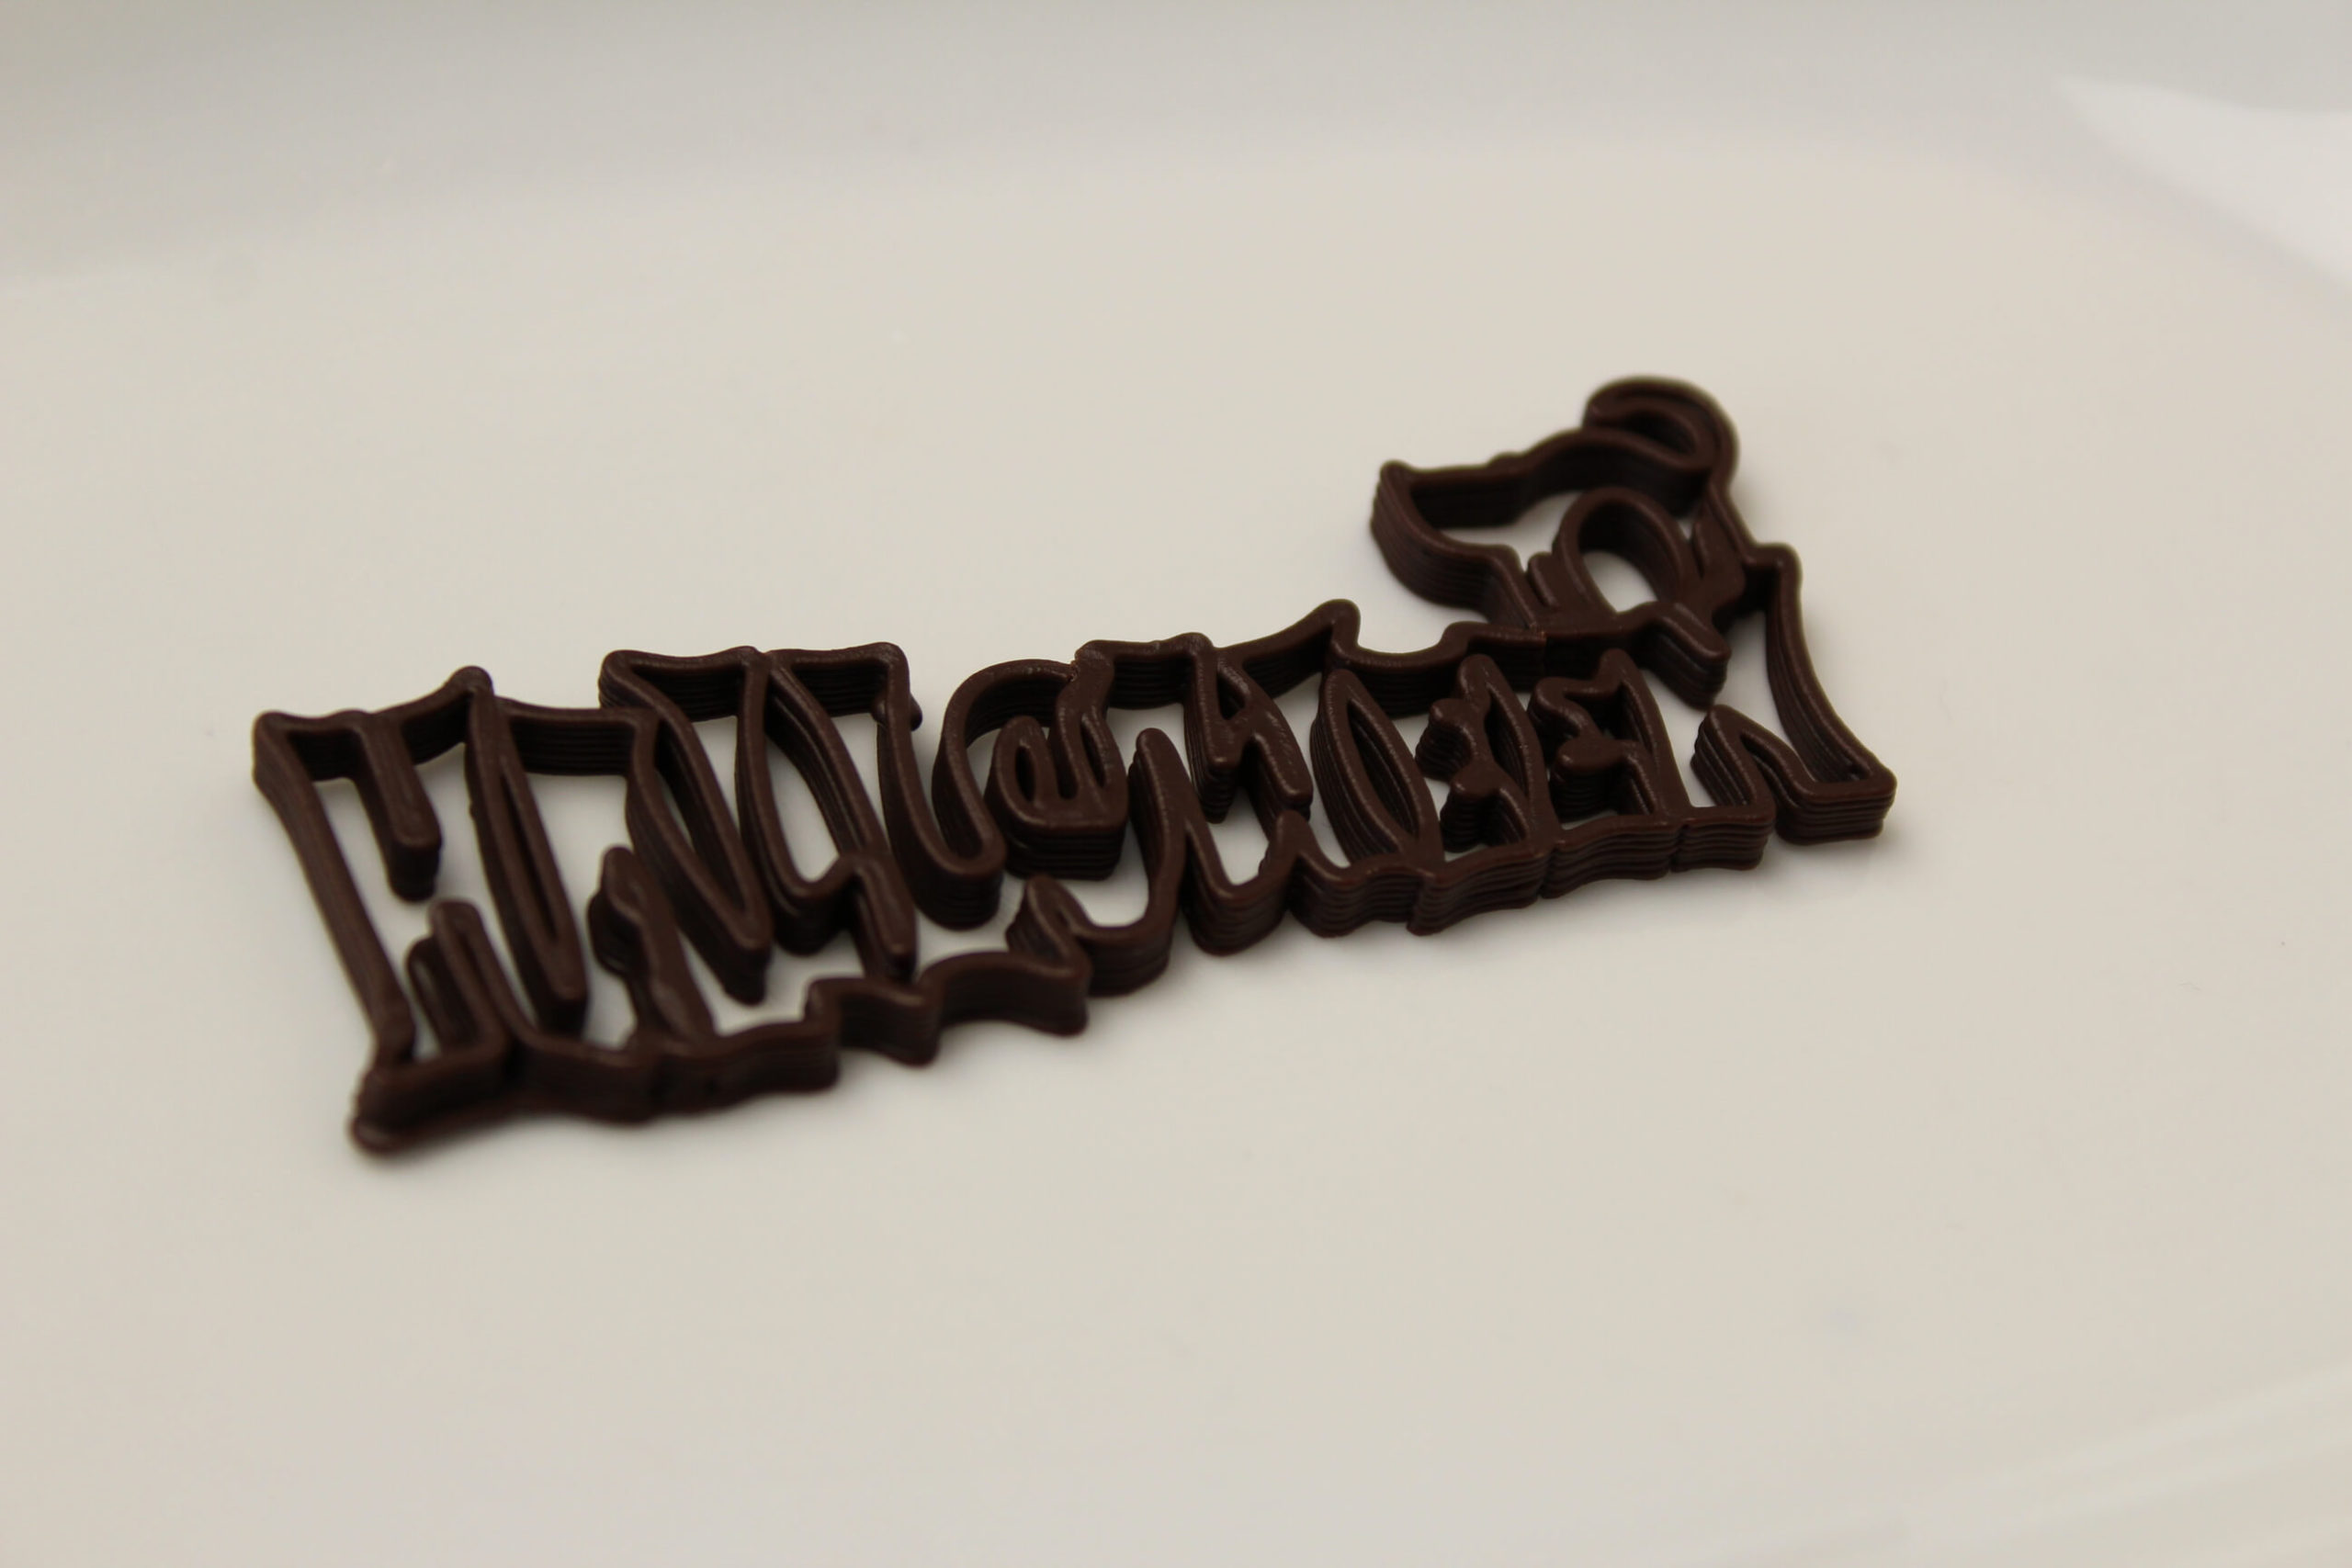 Halloween-Chocolate-3D-print-on-Mycusini-1